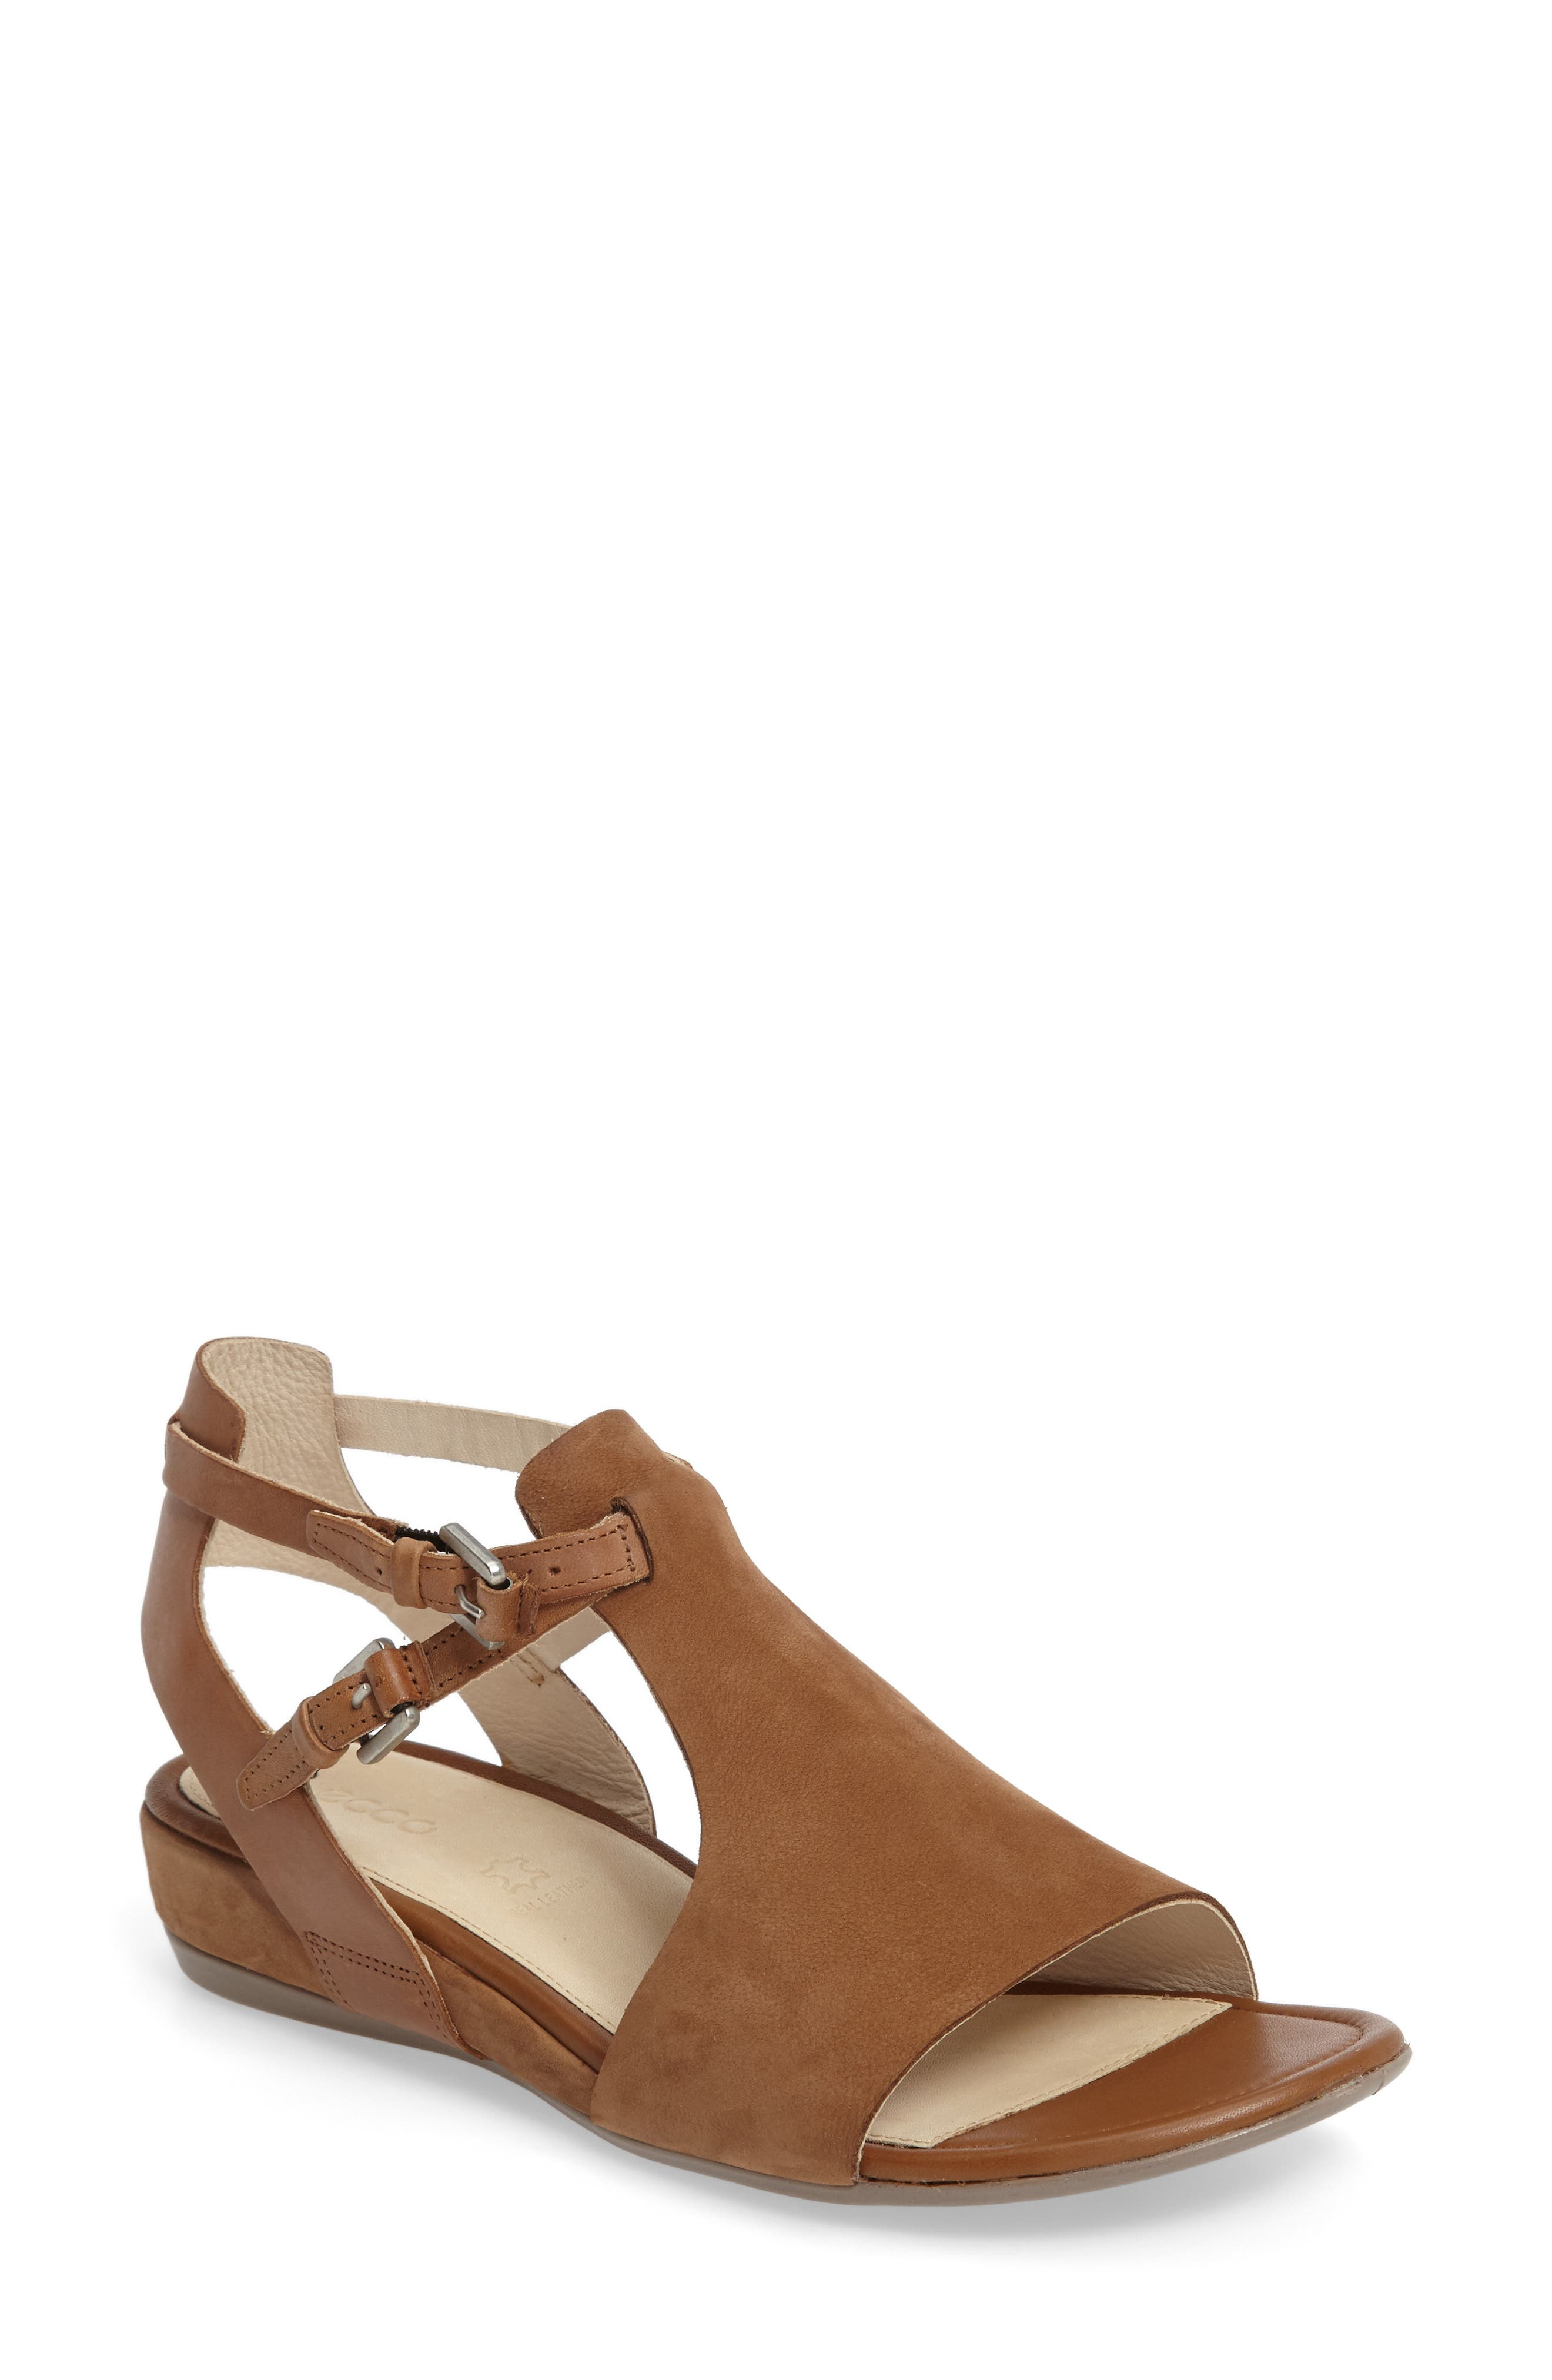 'Touch 25' Sandal,                             Main thumbnail 1, color,                             Camel Leather